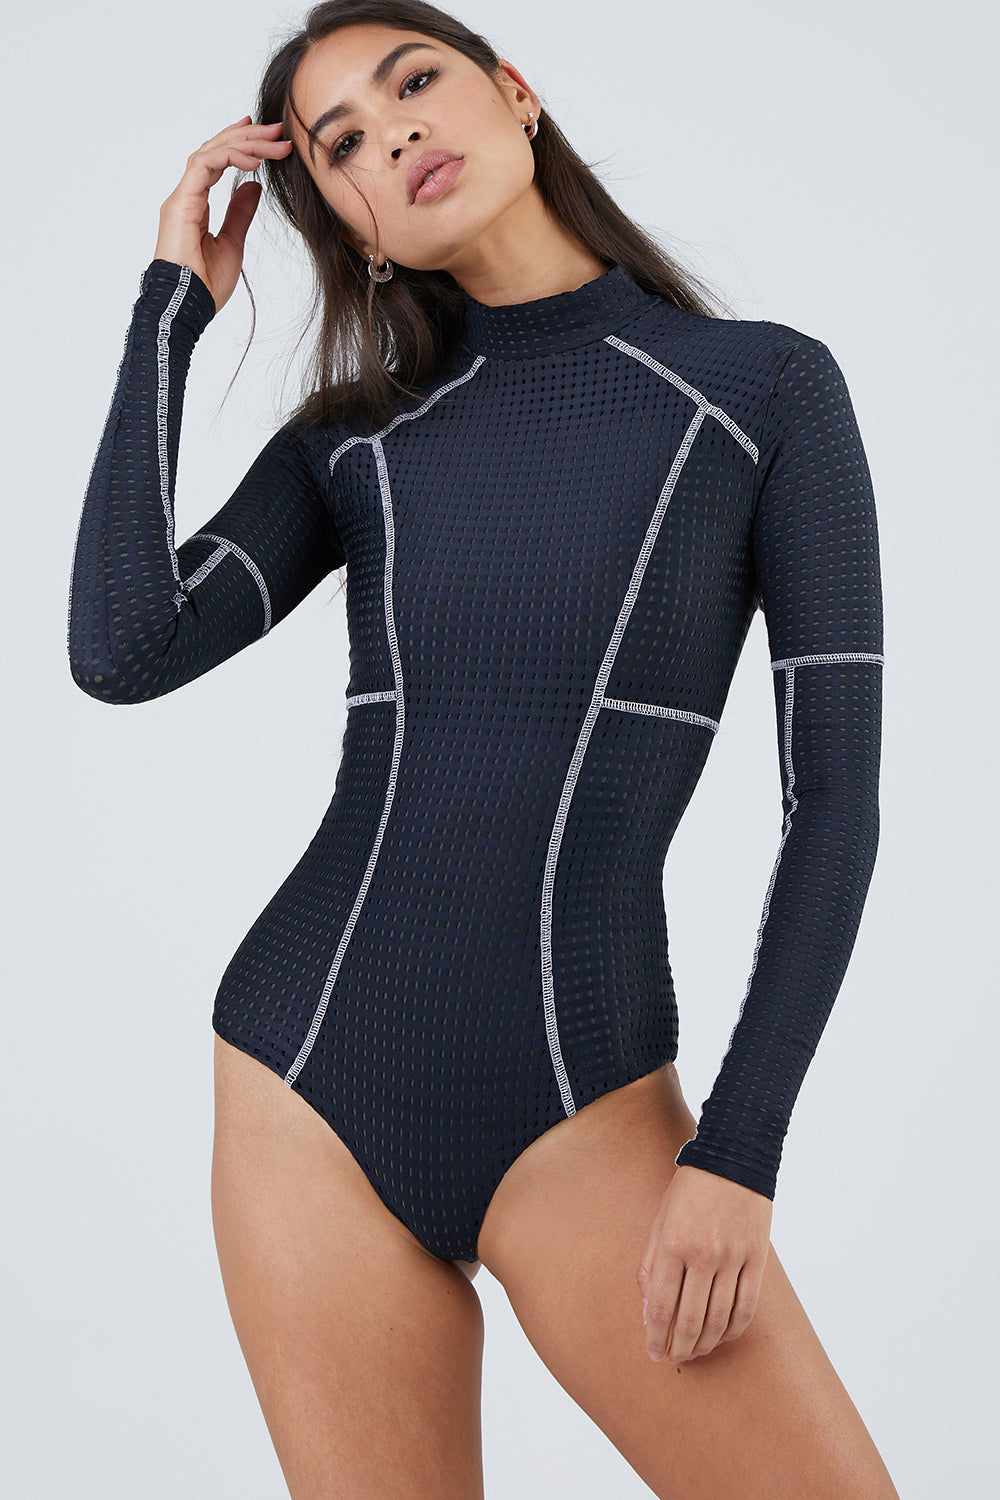 ACACIA Ehukai Mesh Long Sleeve Rashguard Bodysuit - Black Beauty Mesh One  Piece  bccc5c99d